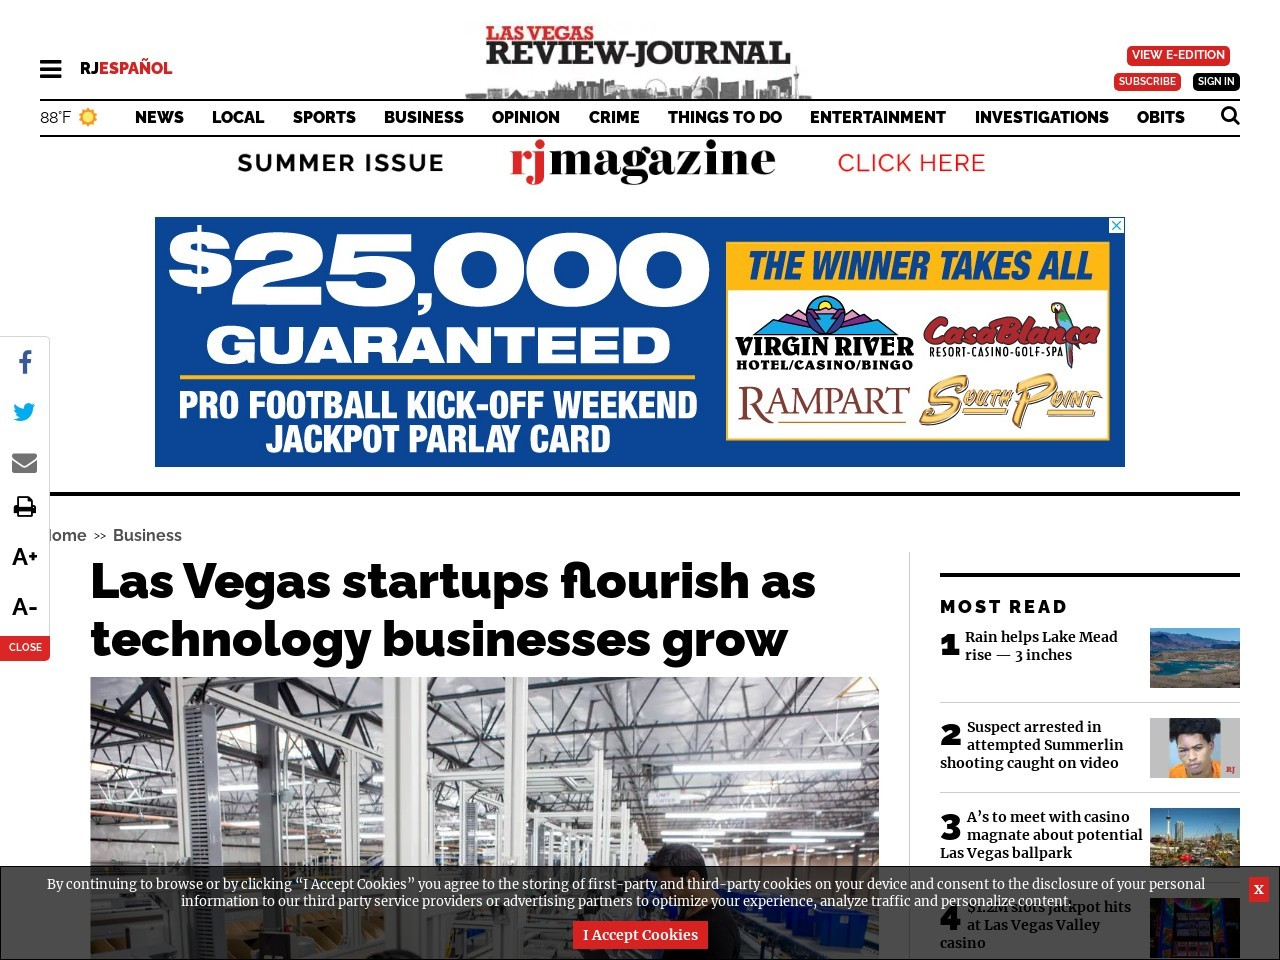 Las Vegas startups flourish as technology businesses grow